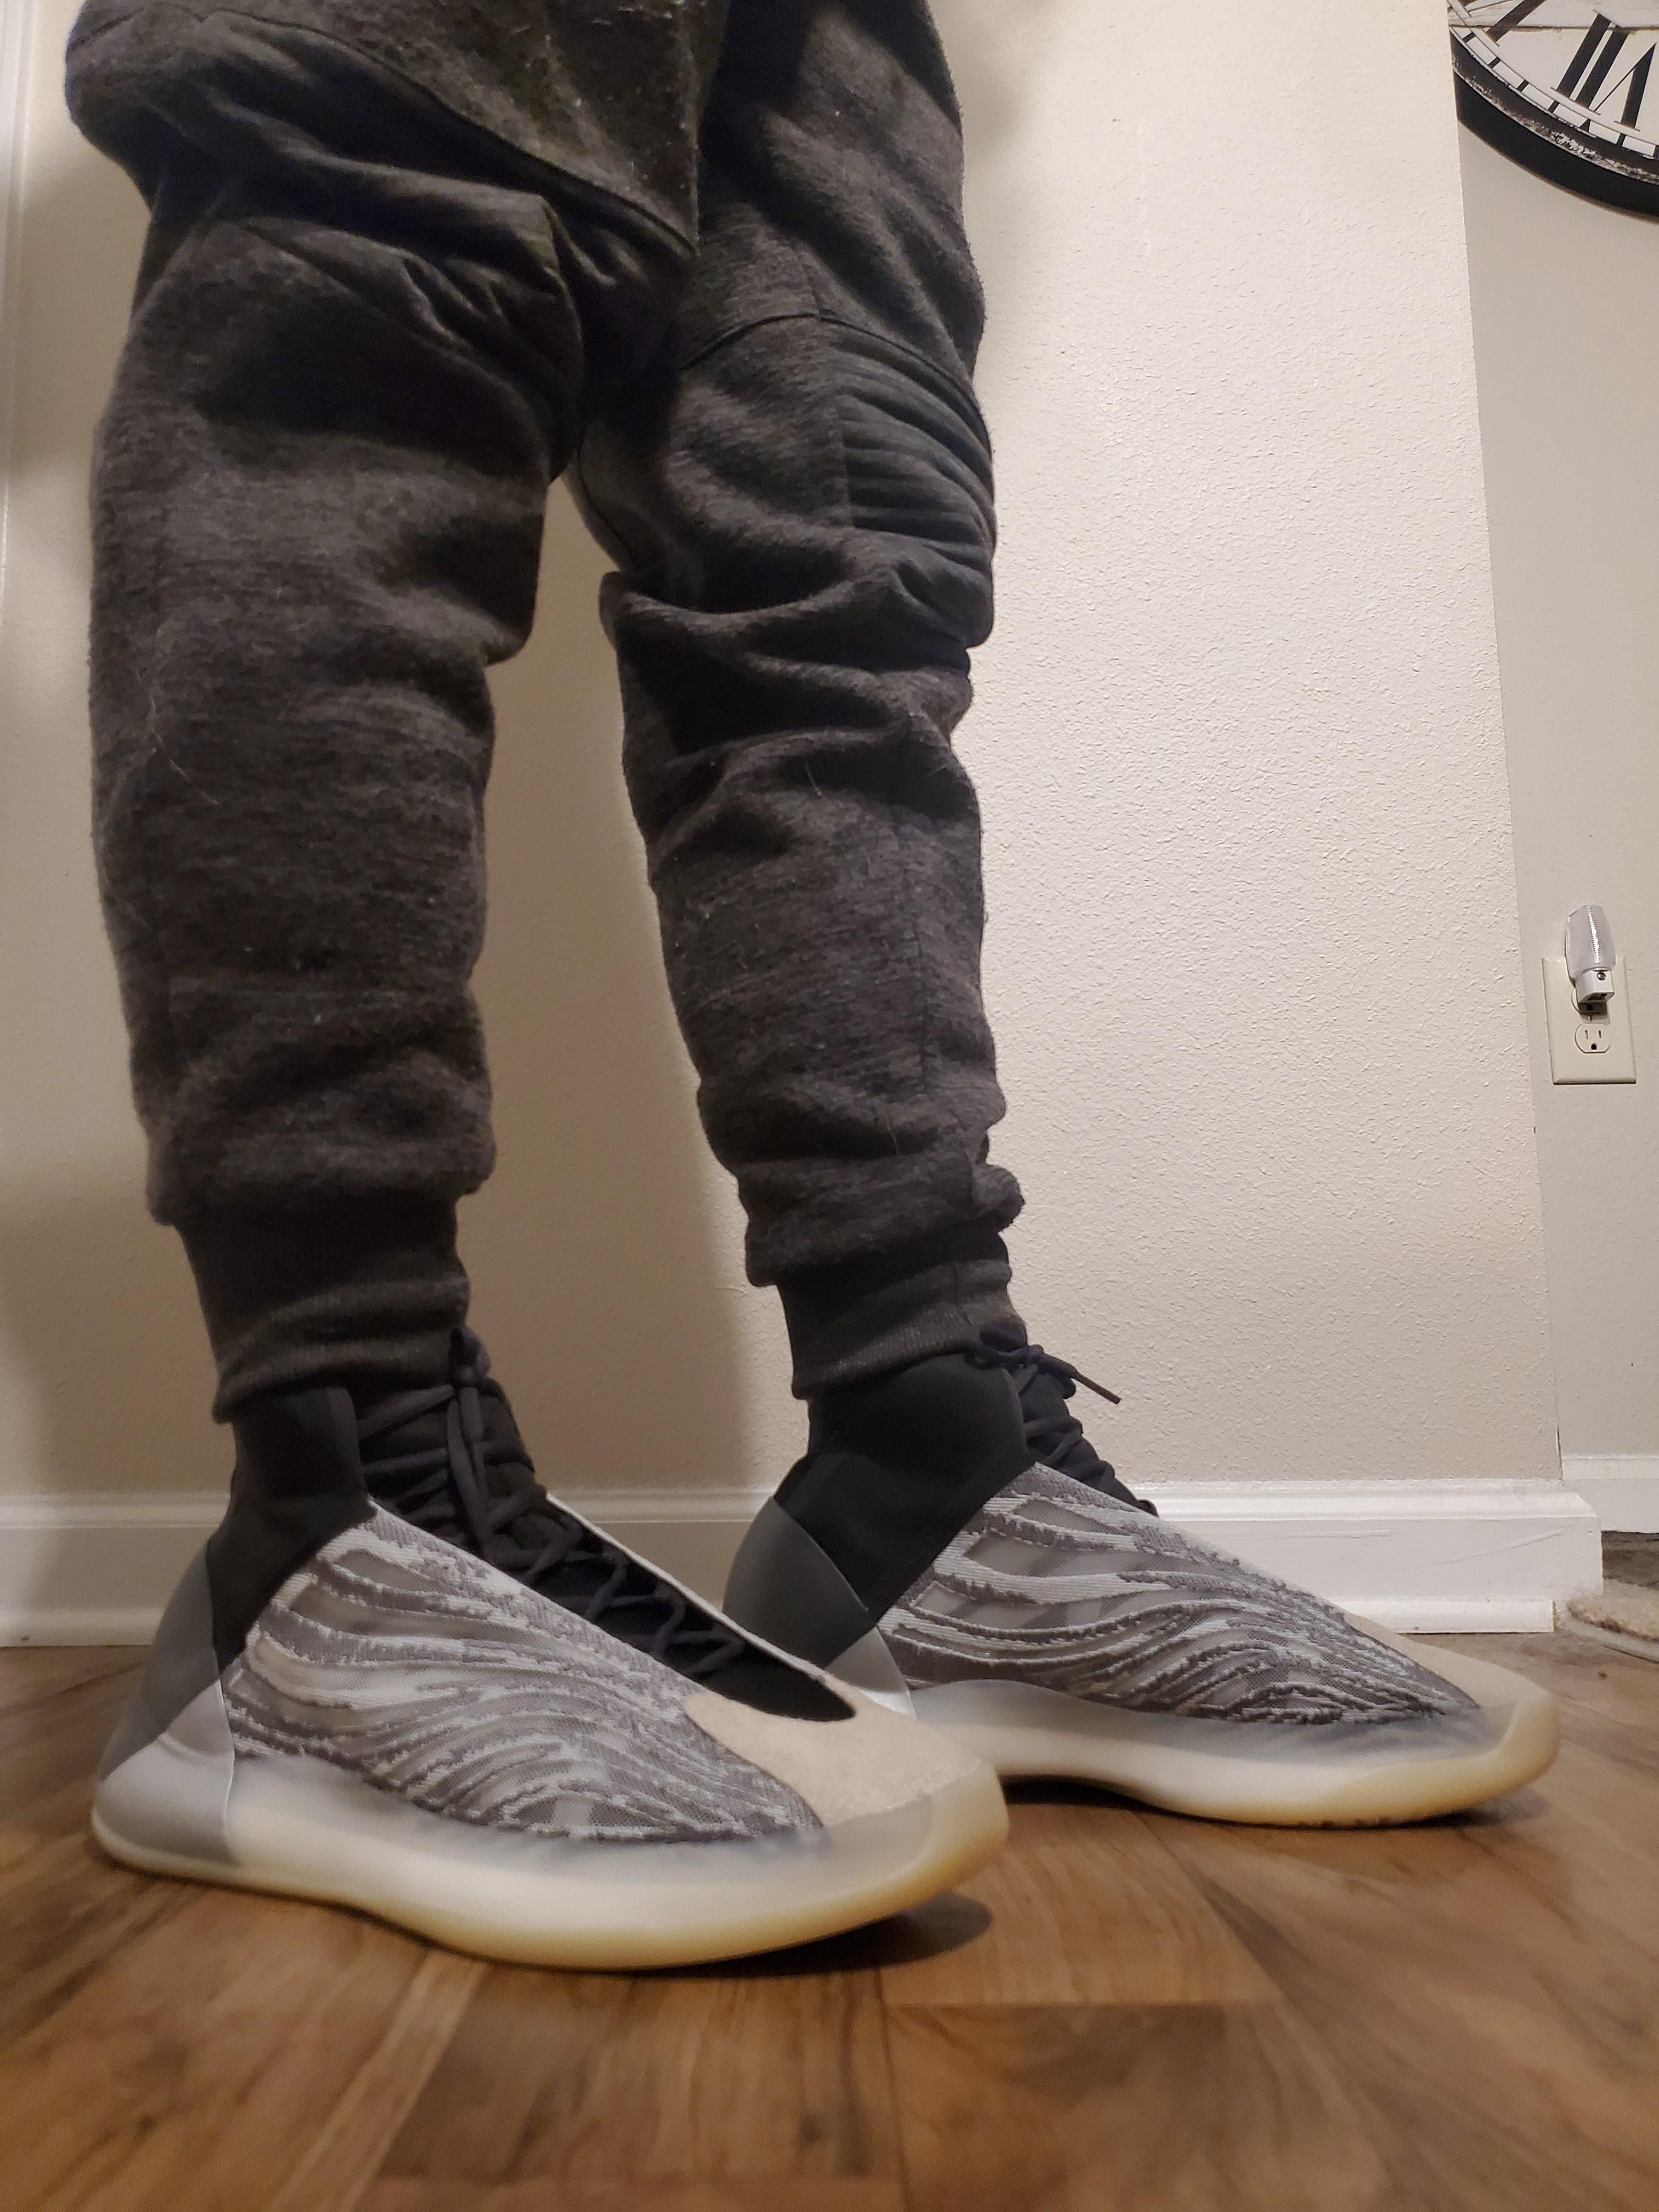 Yeezy Qntm Sneakers Sneakersfashion Sneakersoutfit Sneakershead In 2020 Sneakers Fashion Outfits Sneakers Fashion Athletic Shoes Outfit